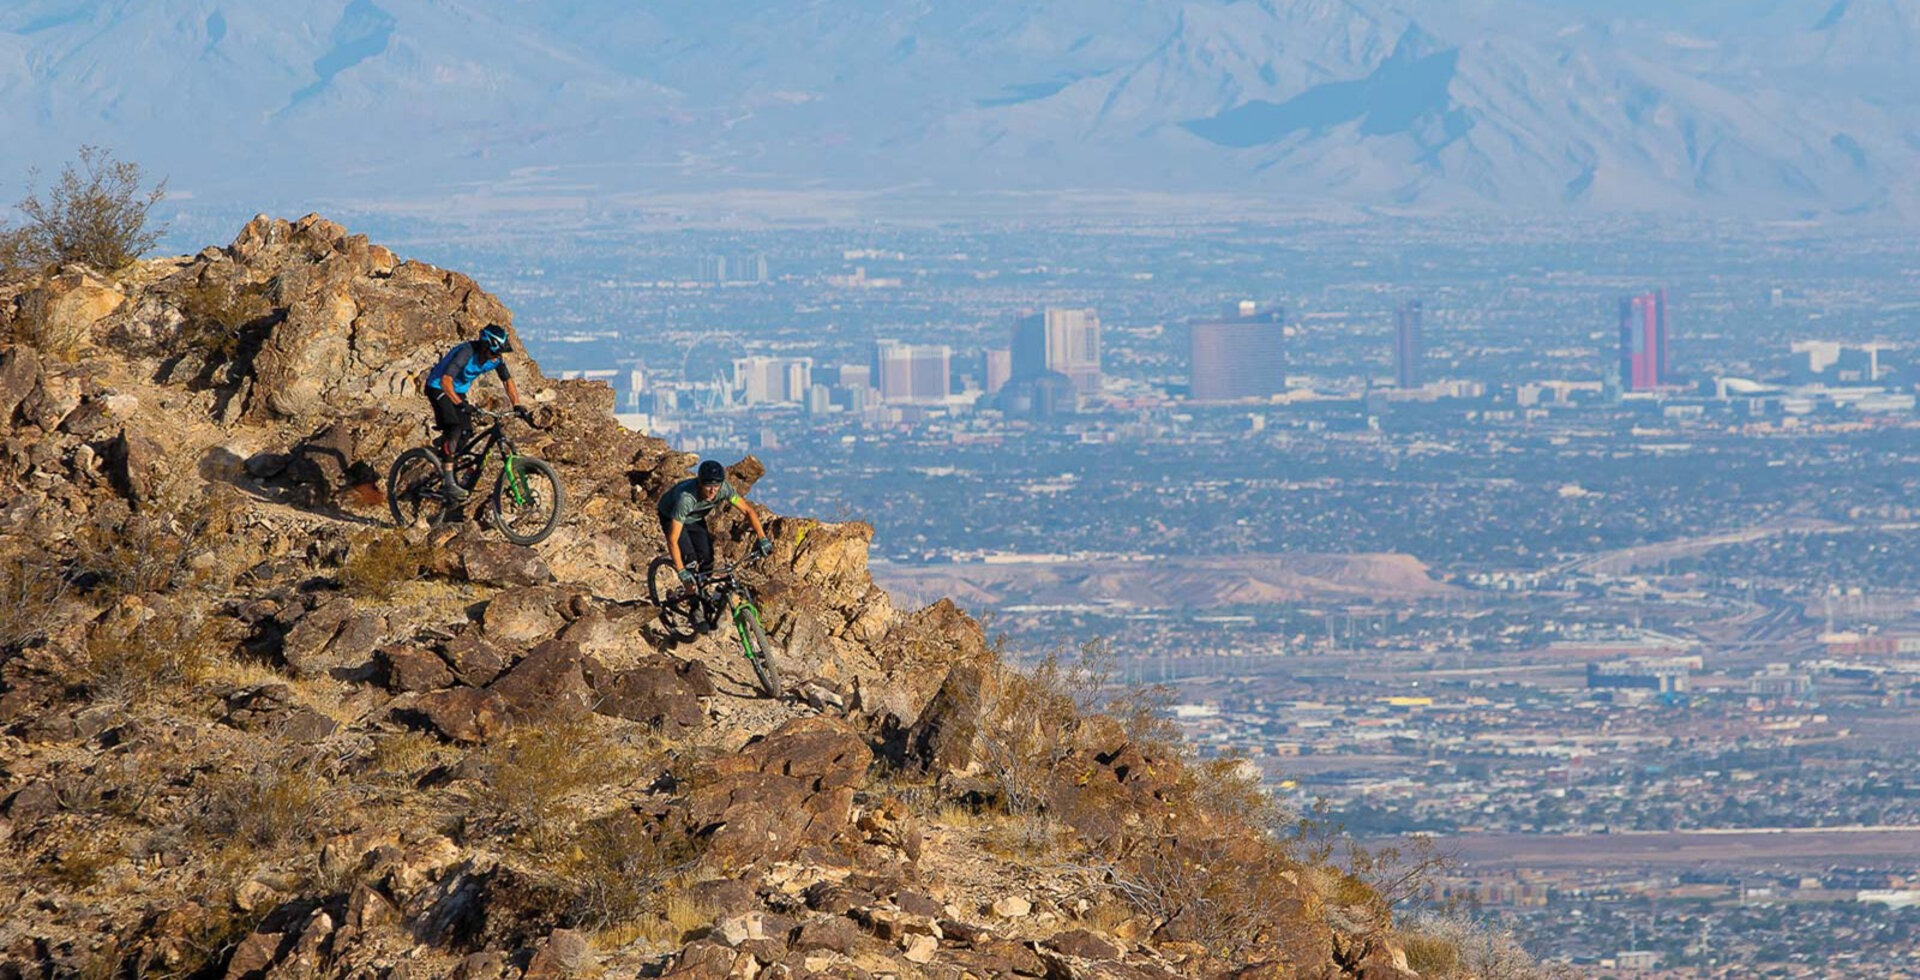 Bootleg Canyon is known for its brutal rock gardens, unrelenting terrain and advanced lines, which riders Joey Foresta and Brian Lopes make quick work of, as the Las Vegas Strip looms across the valley below.